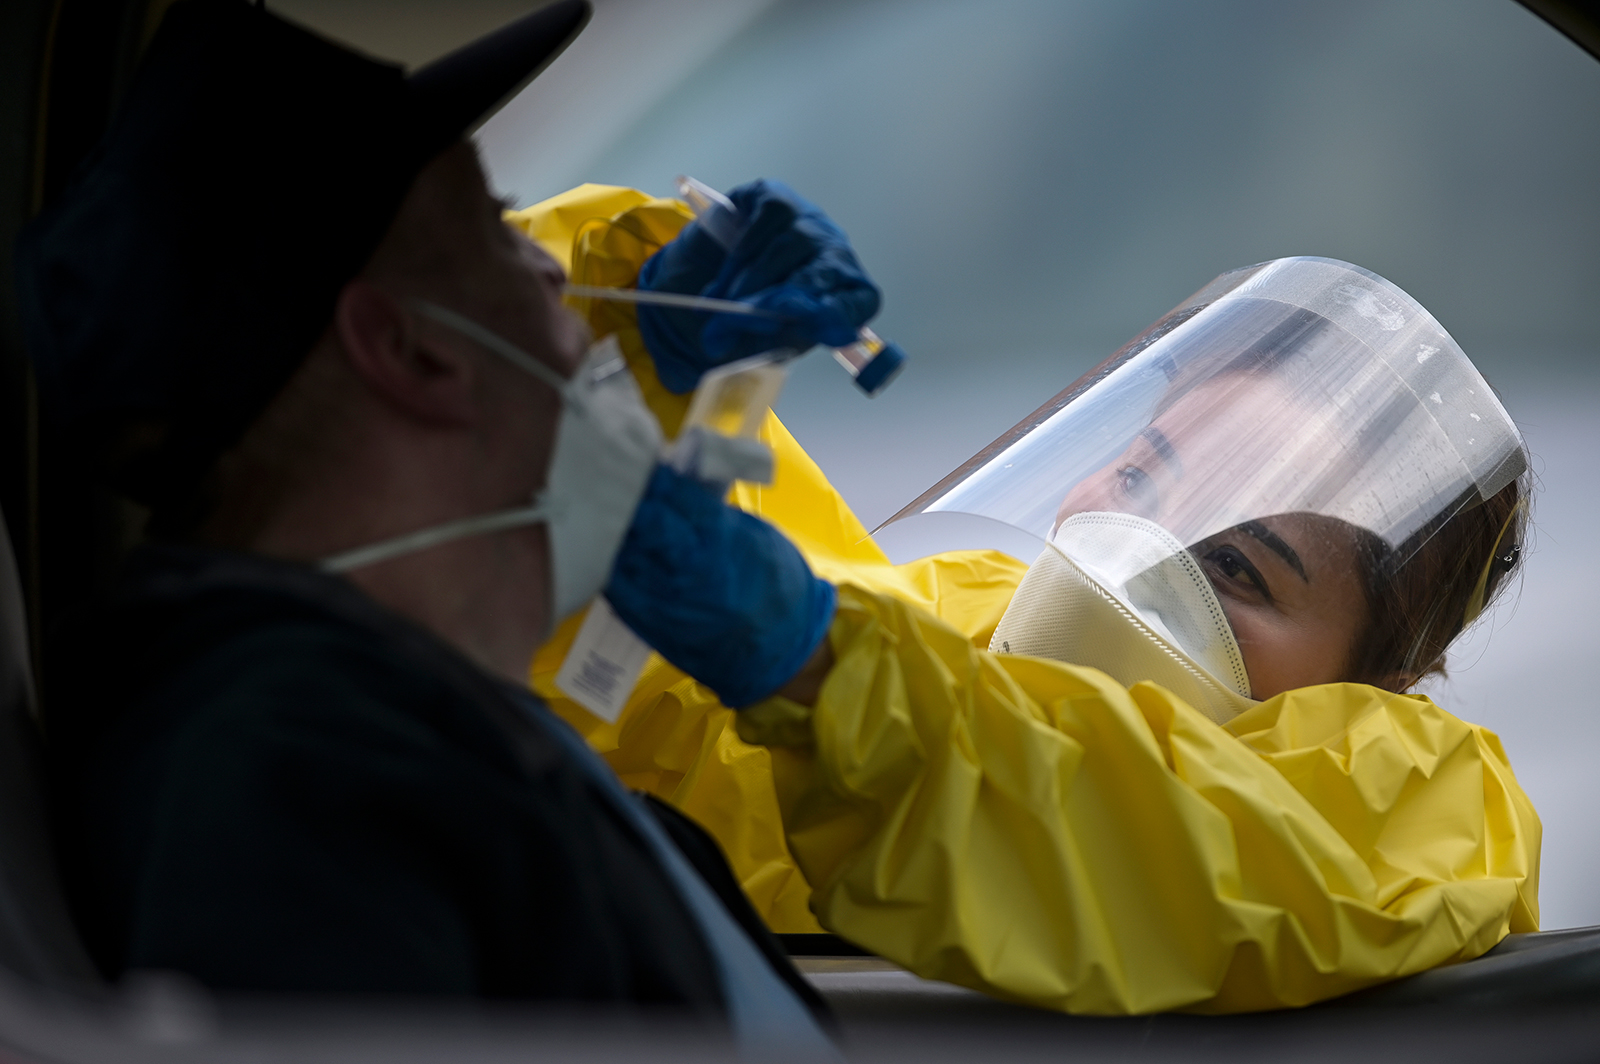 Elizabeth Santoro, a medic with the Minnesota Air National Guard 133rd Medical Group, administers a free Covid-19 test at the Minneapolis Armory on Saturday, May 23.